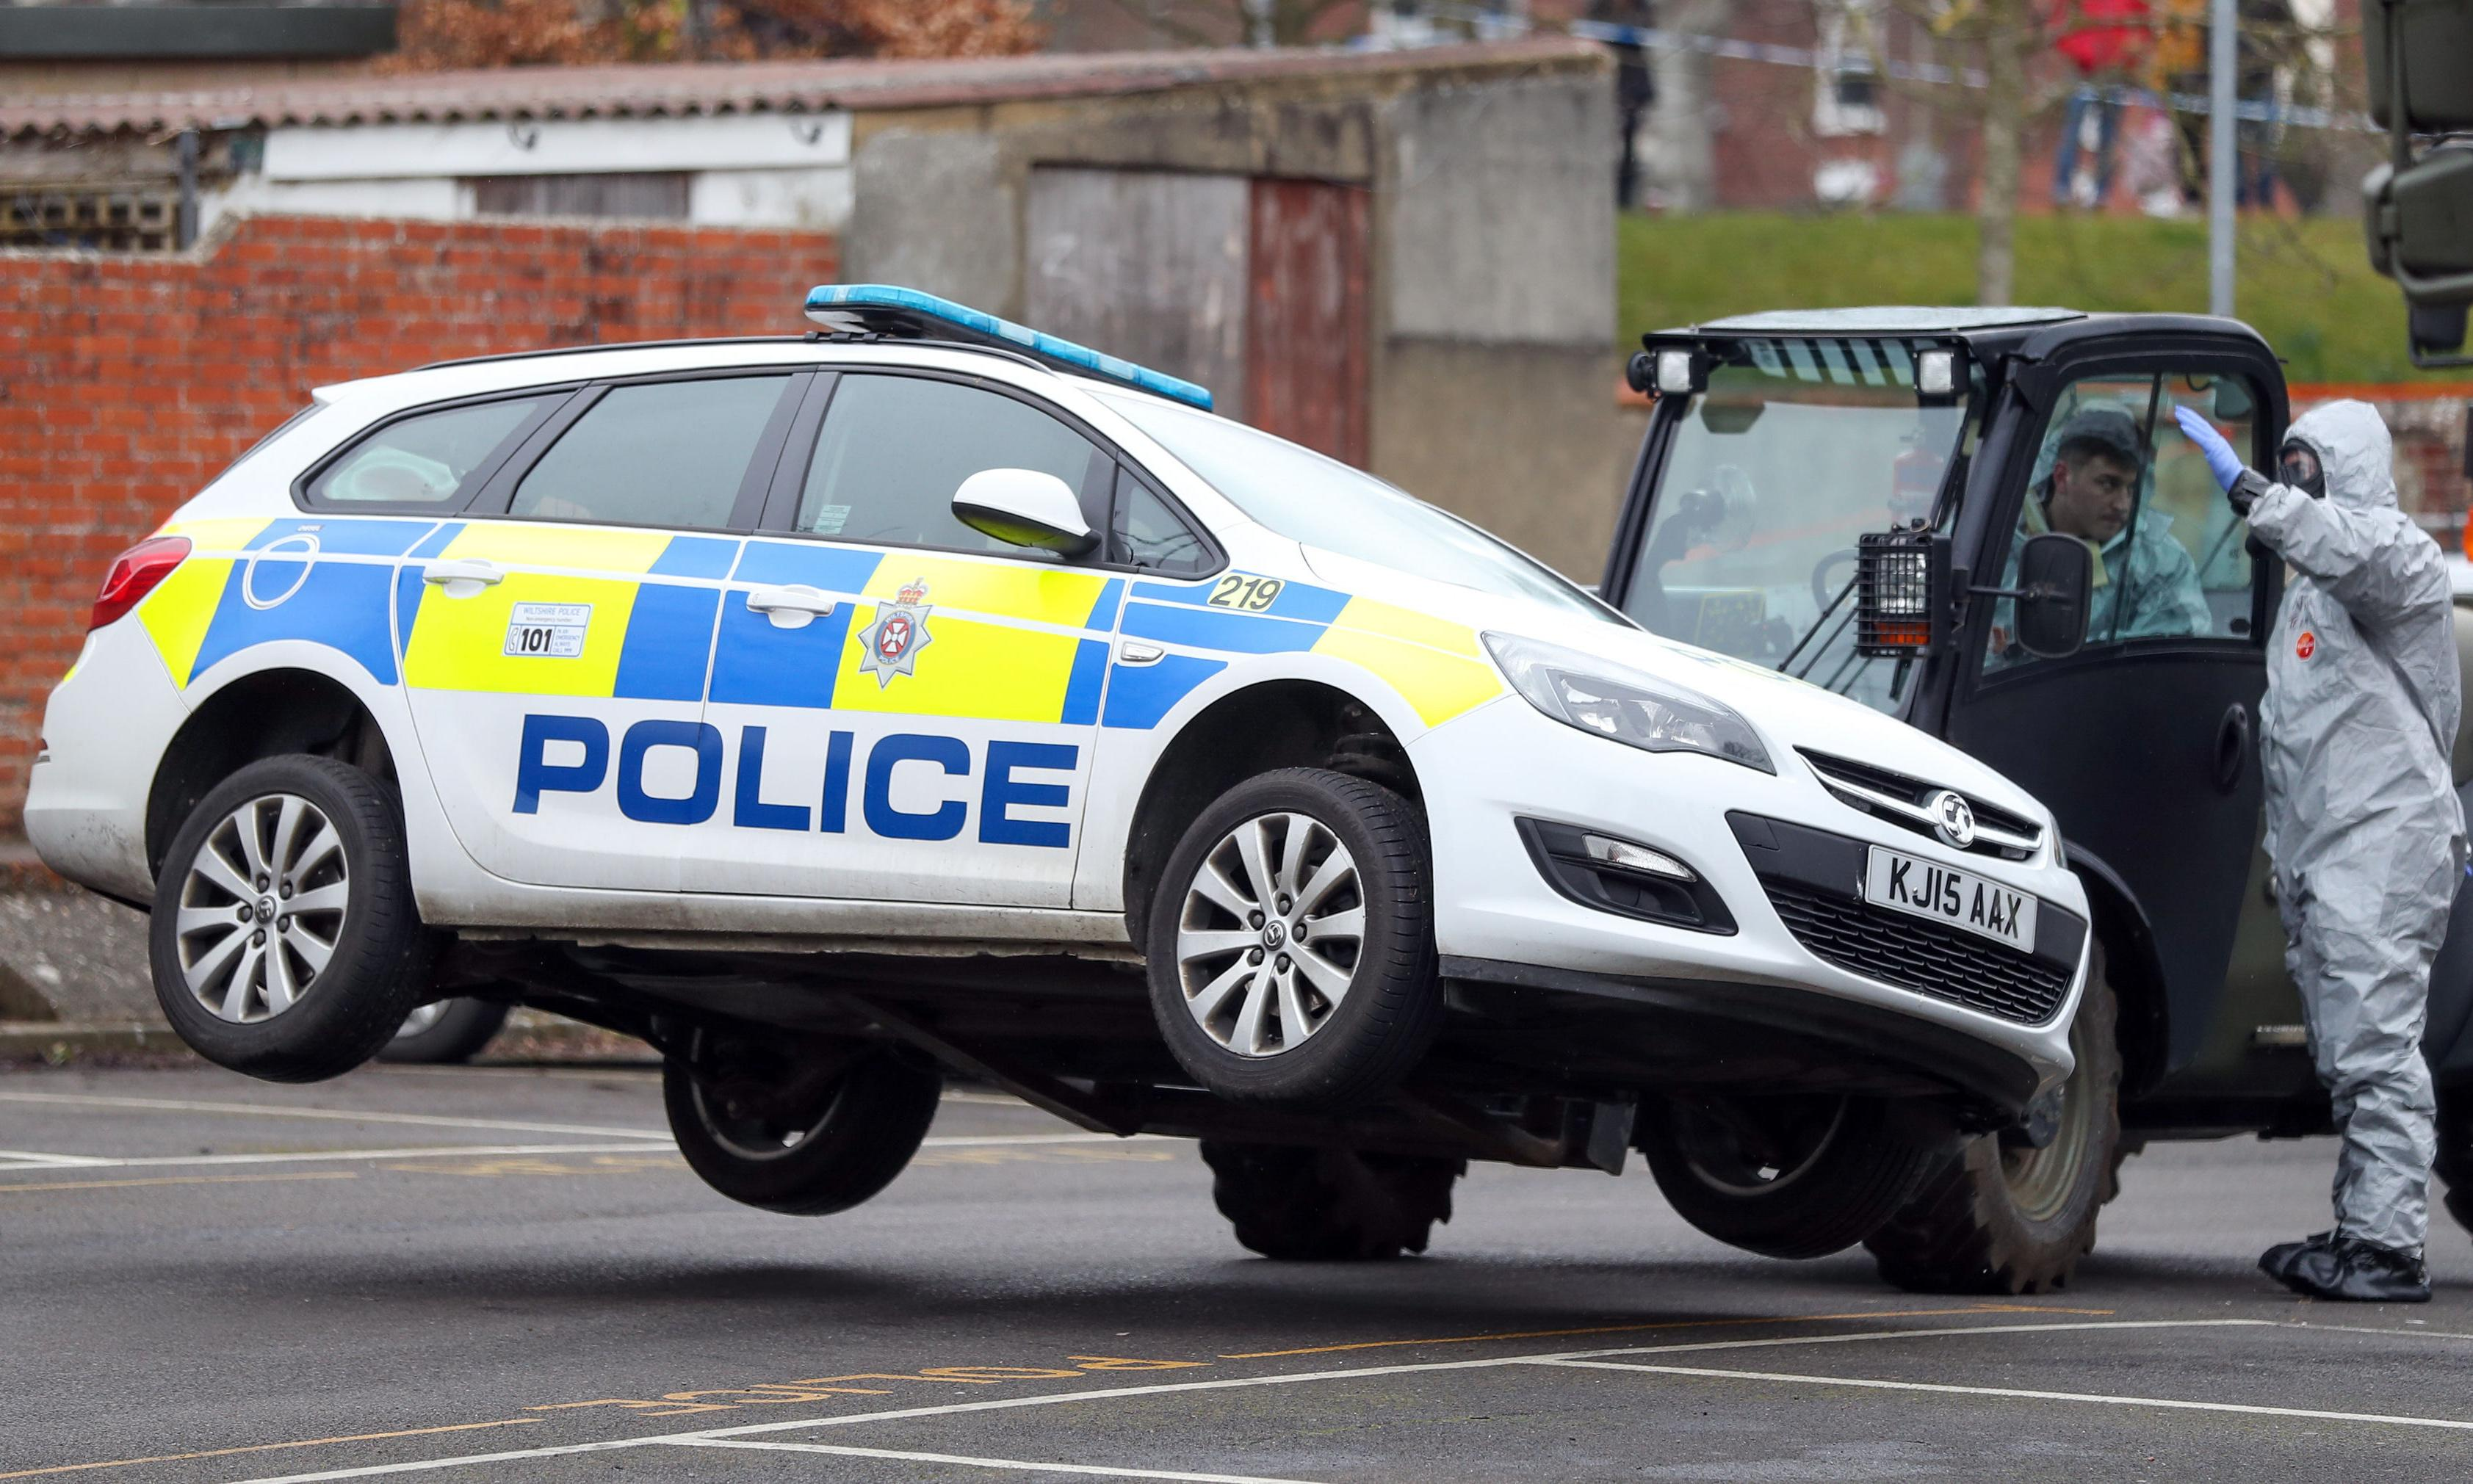 Emergency services spent £900k replacing vehicles after Salisbury attack